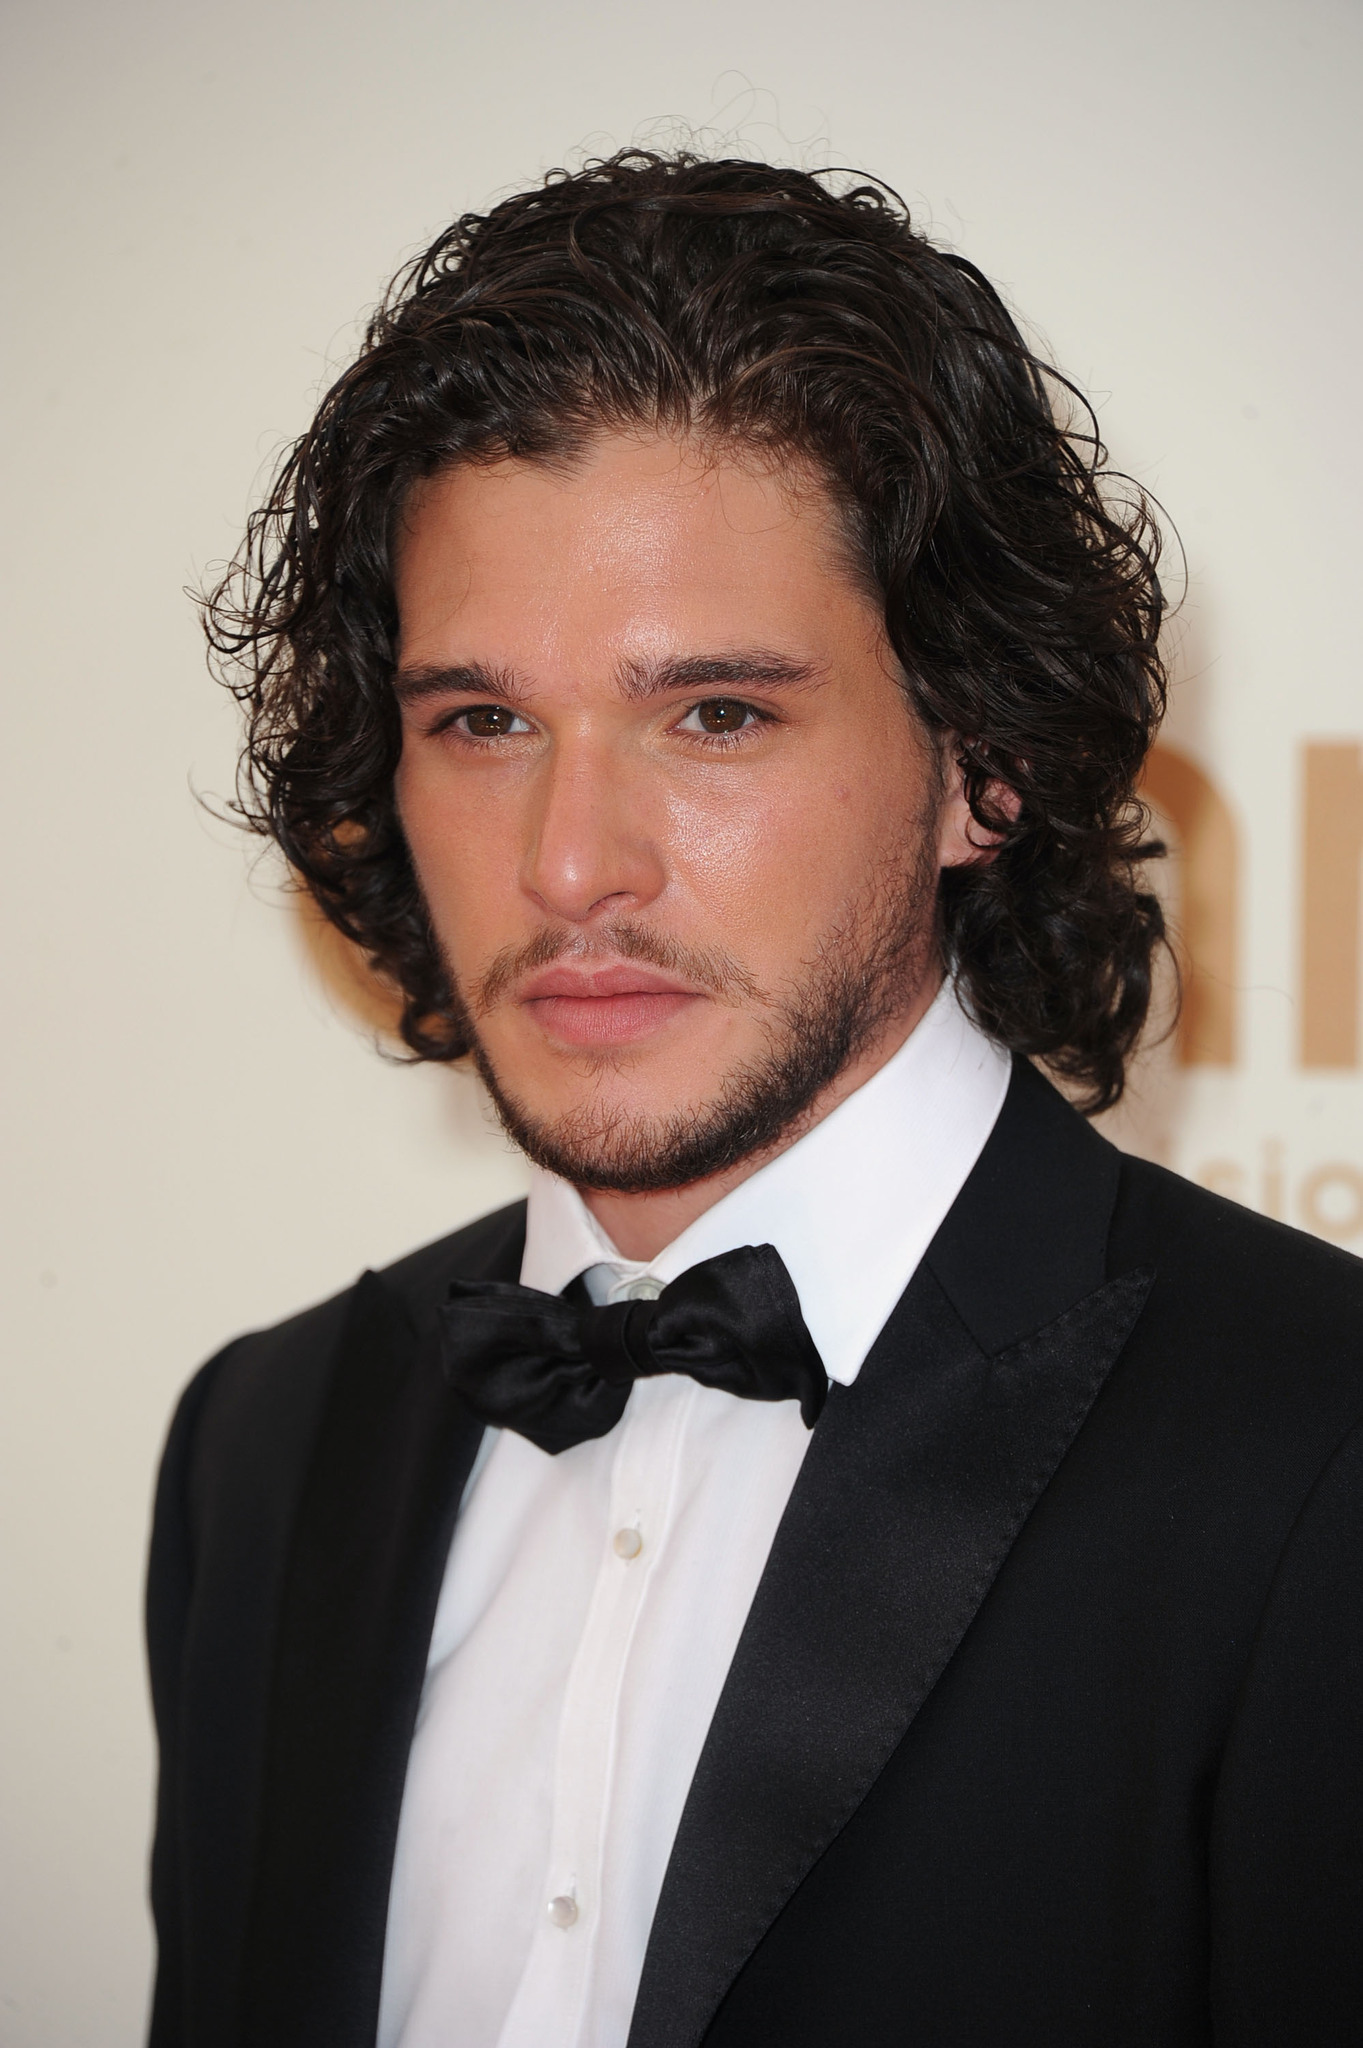 Kit Harington Imdb